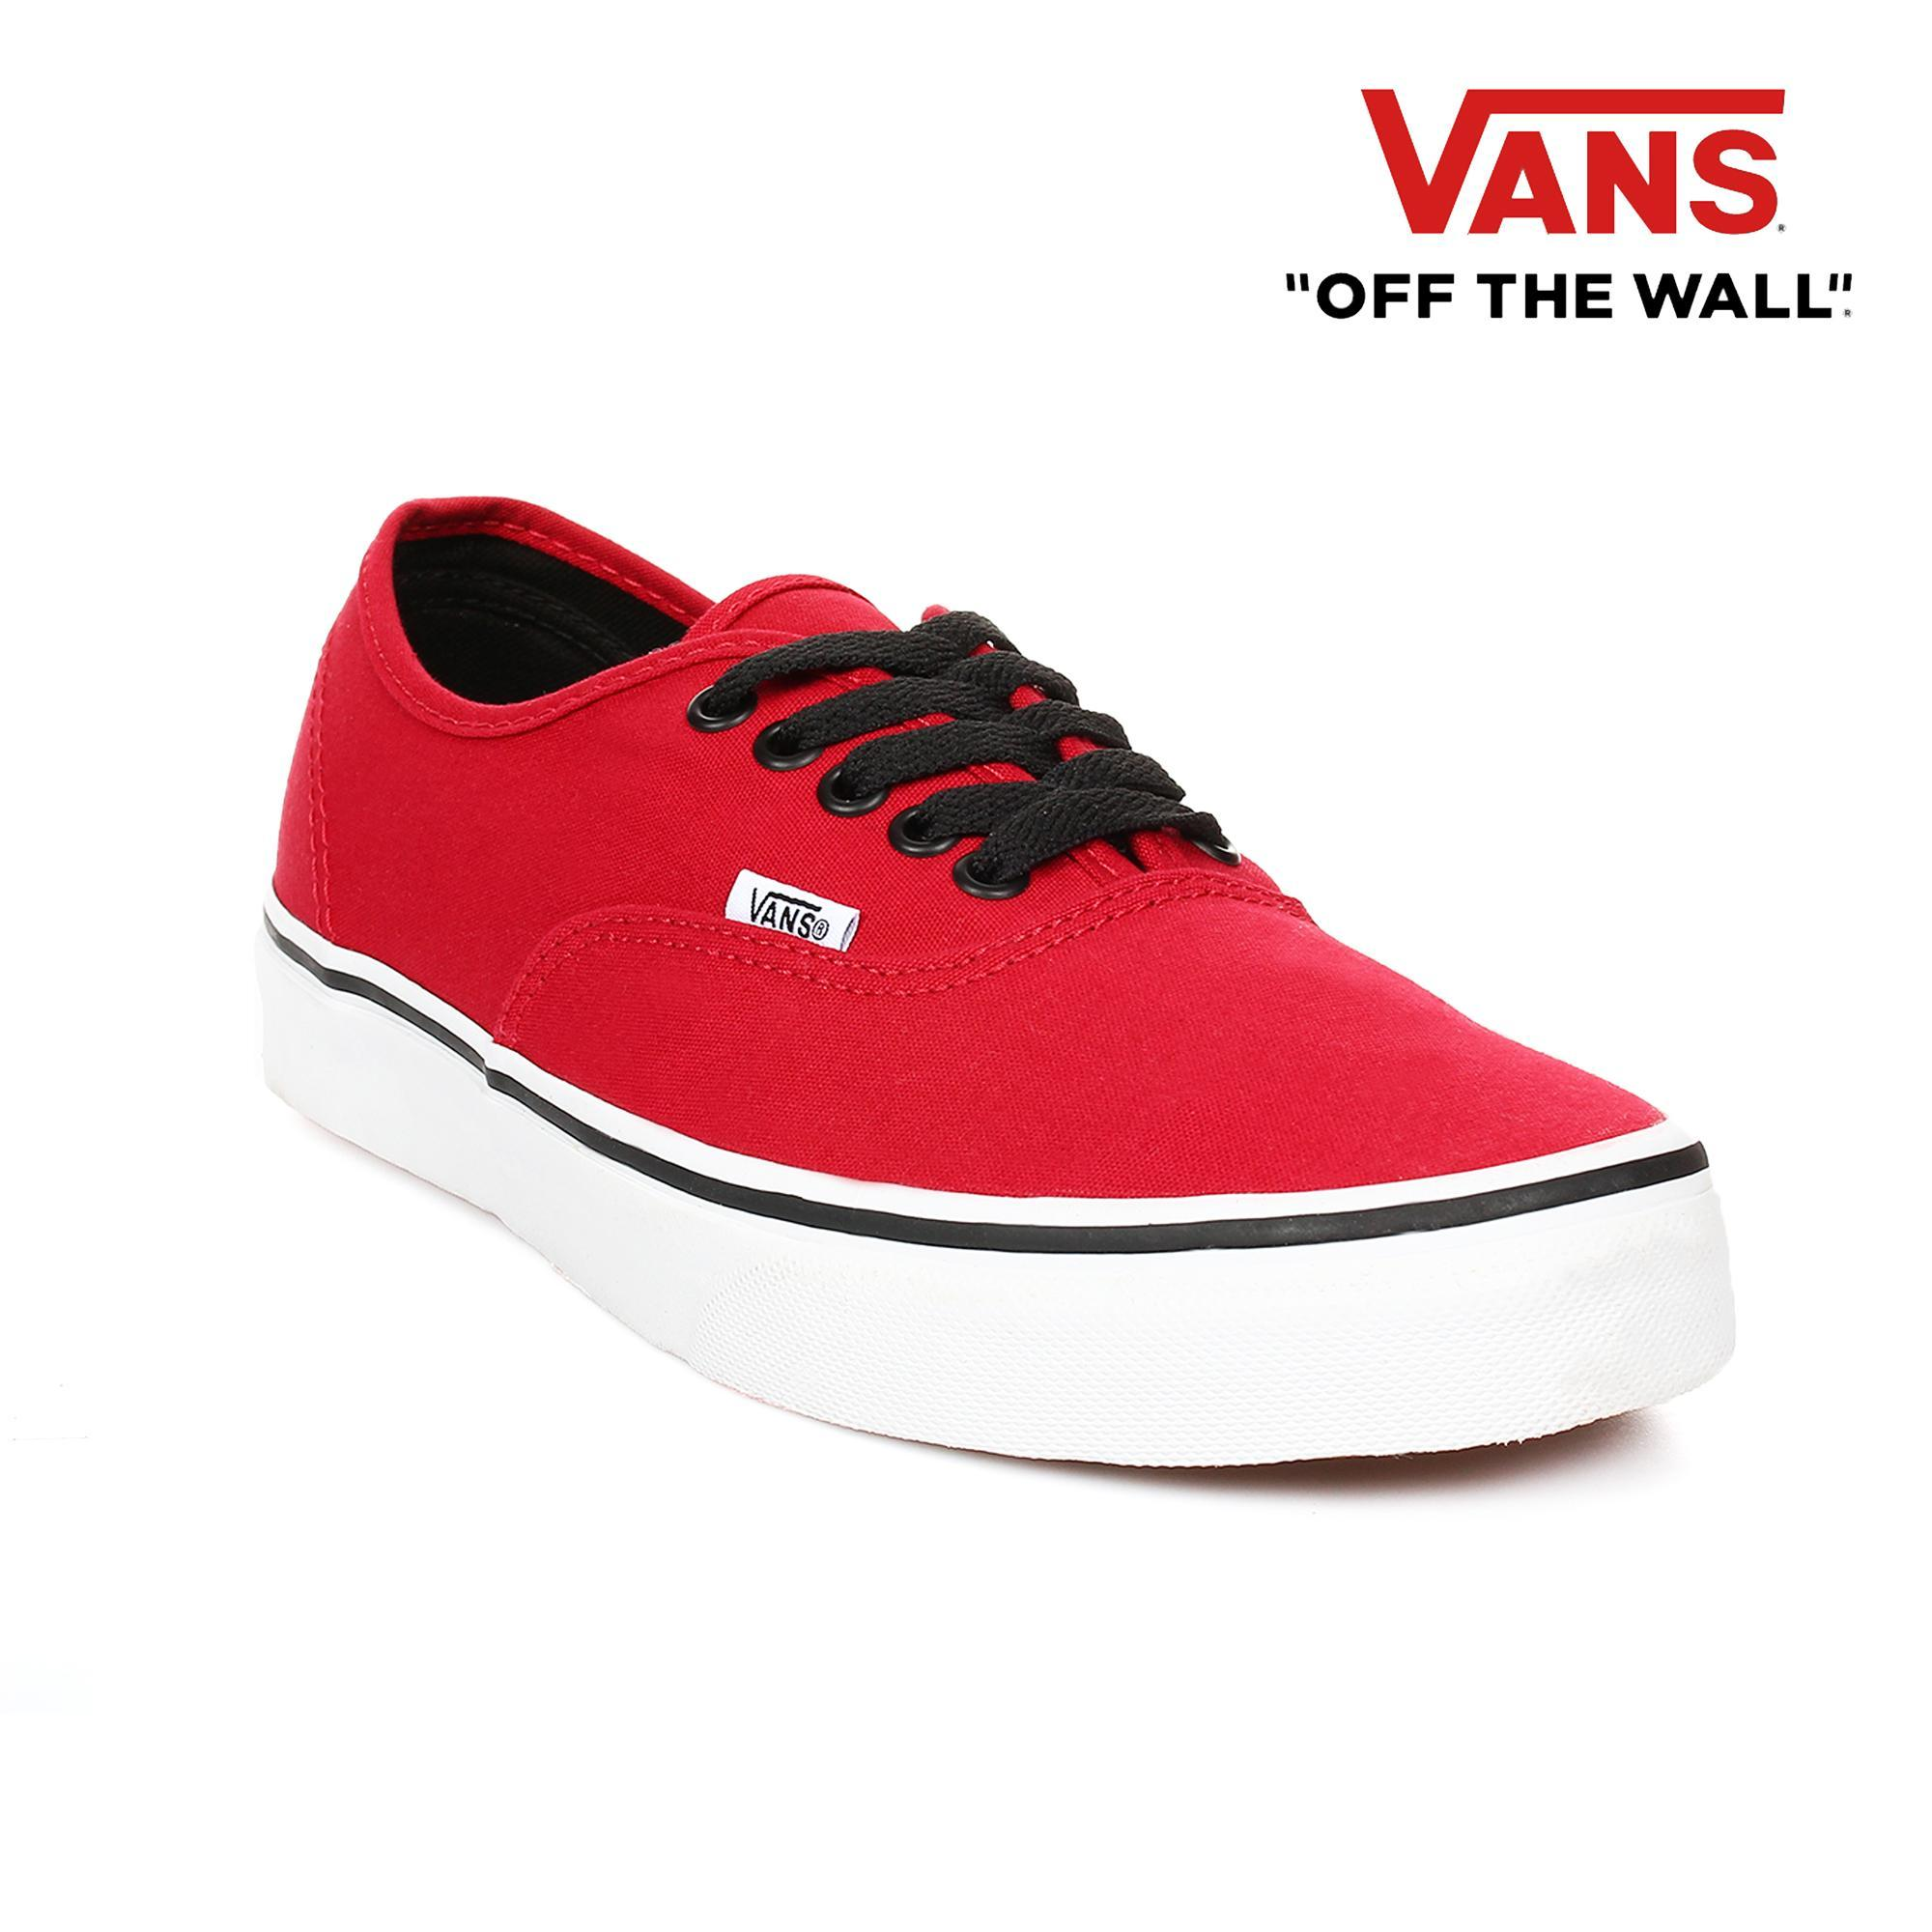 34c92b09ae Vans Shoes for Men Philippines - Vans Men s Shoes for sale - prices ...